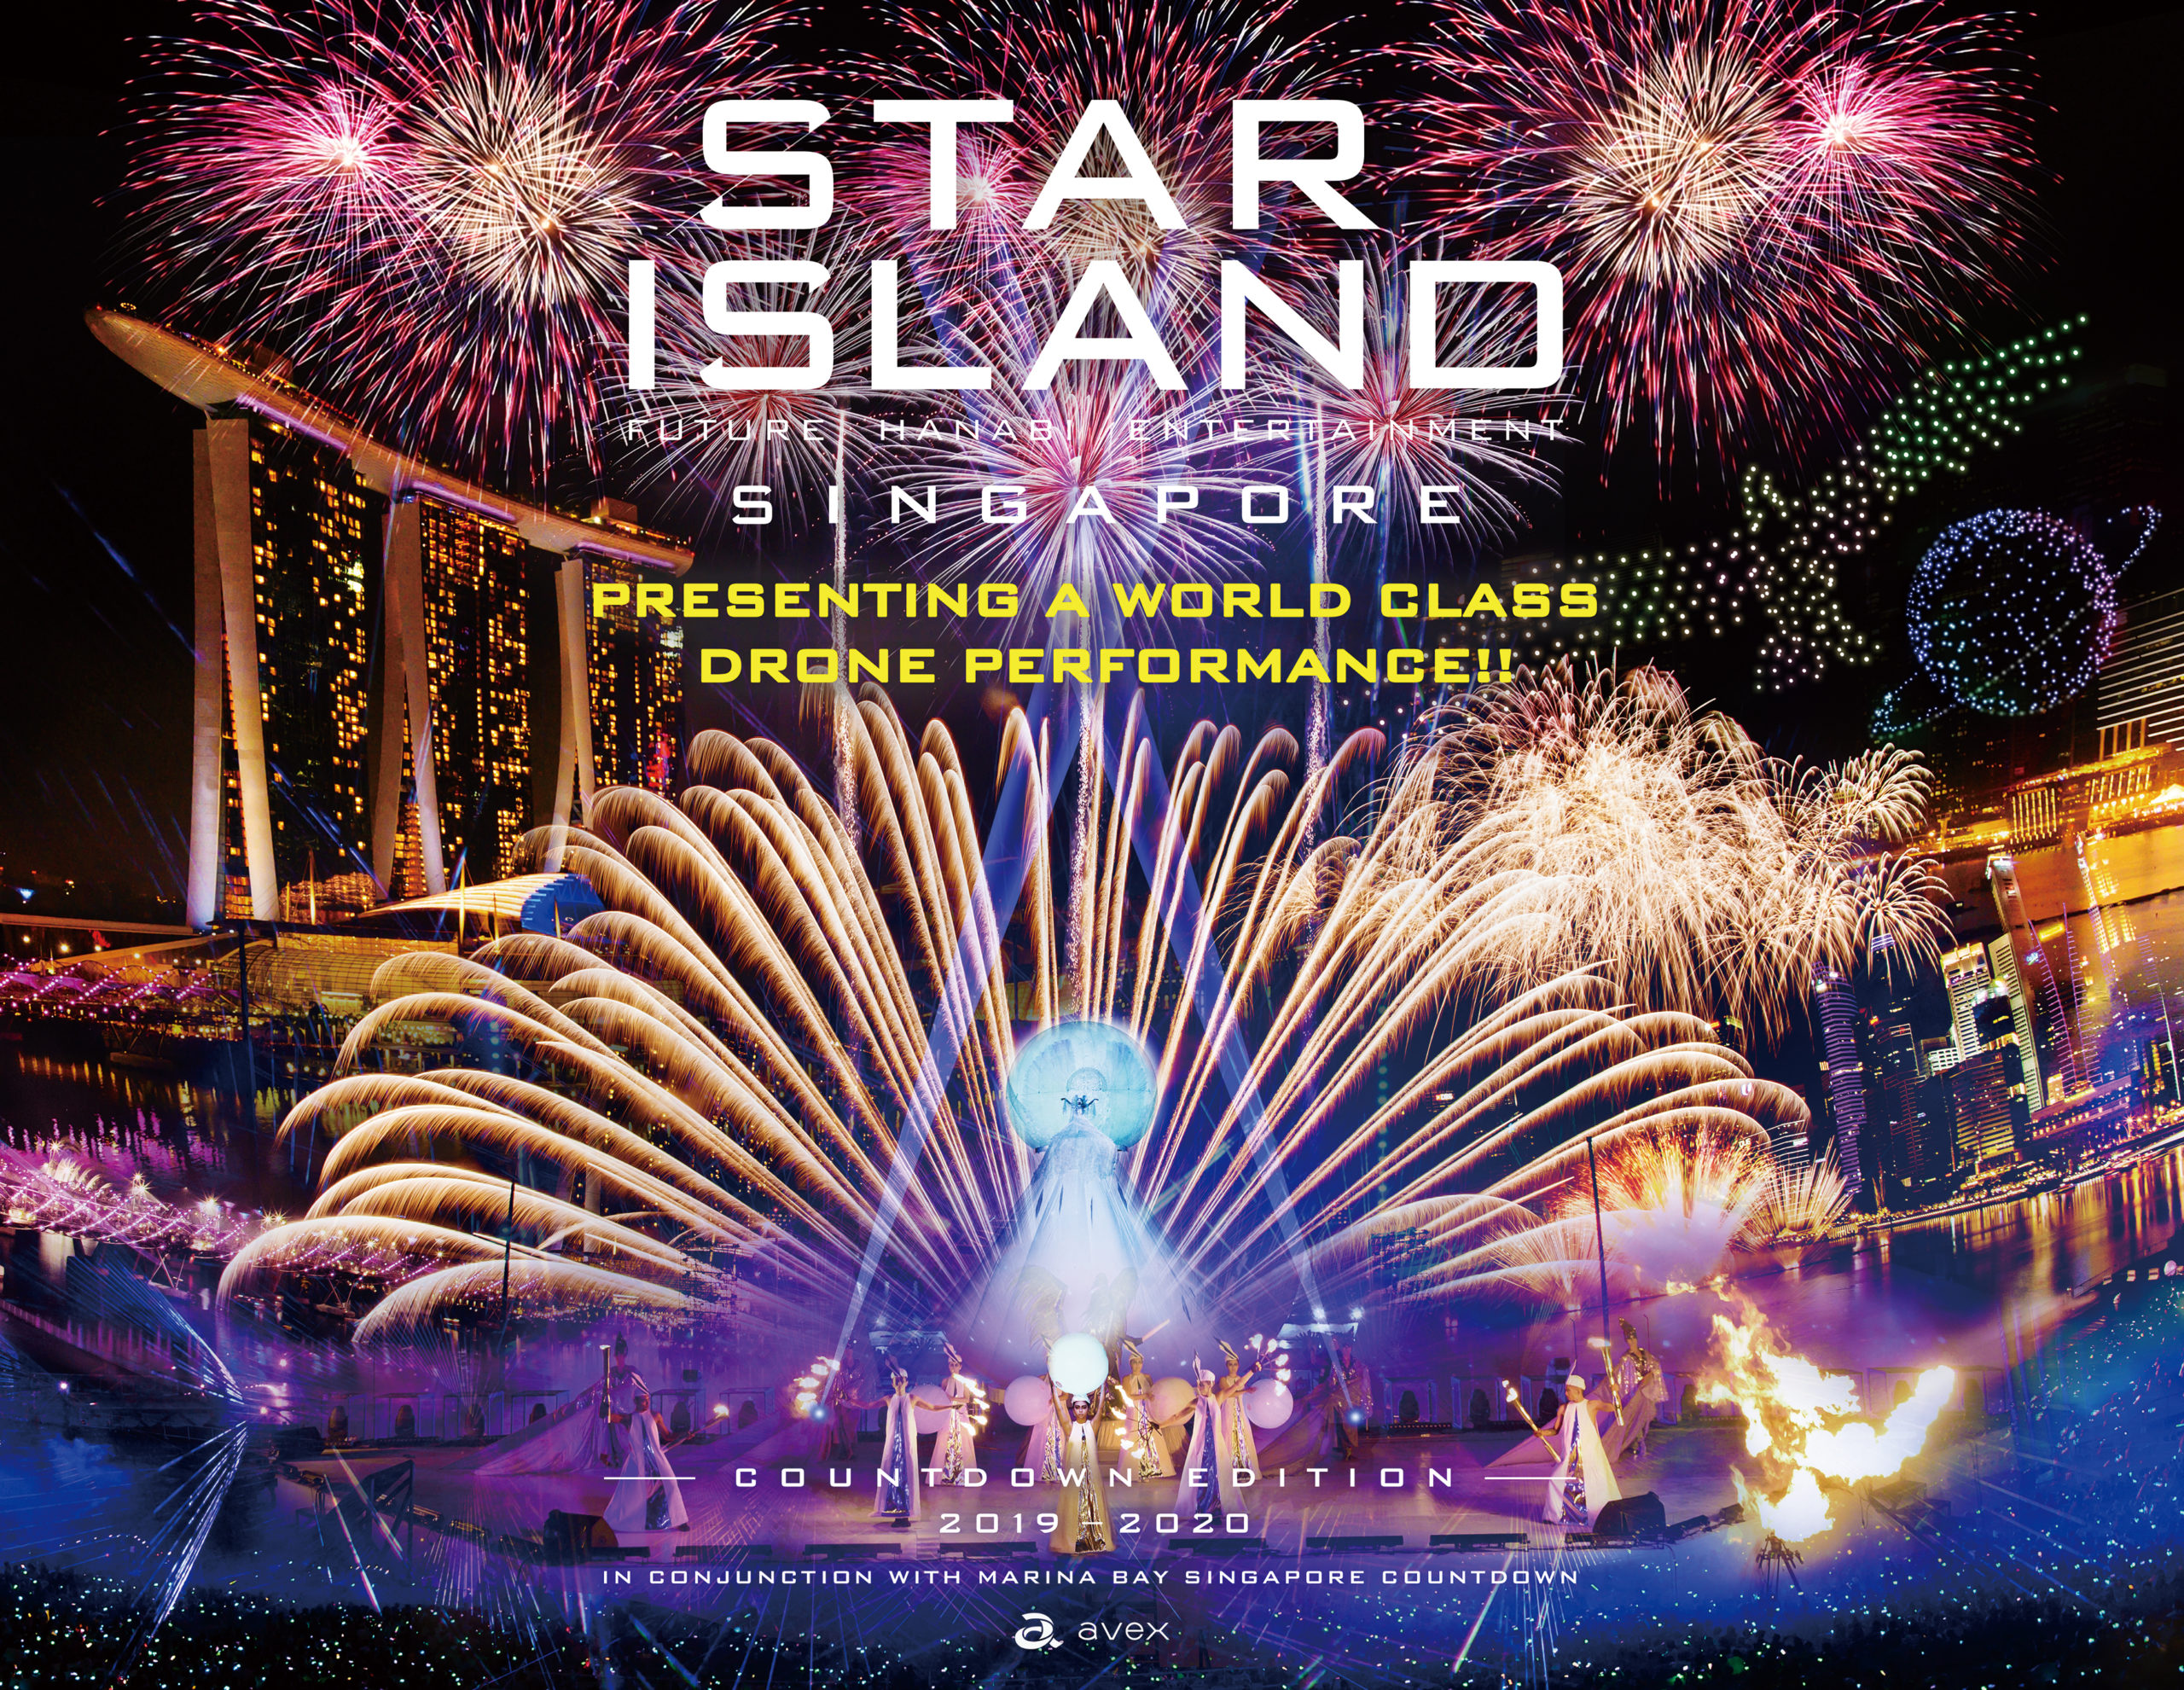 STAR ISLAND SINGAPORE COUNTDOWN EDITION 2019-2020